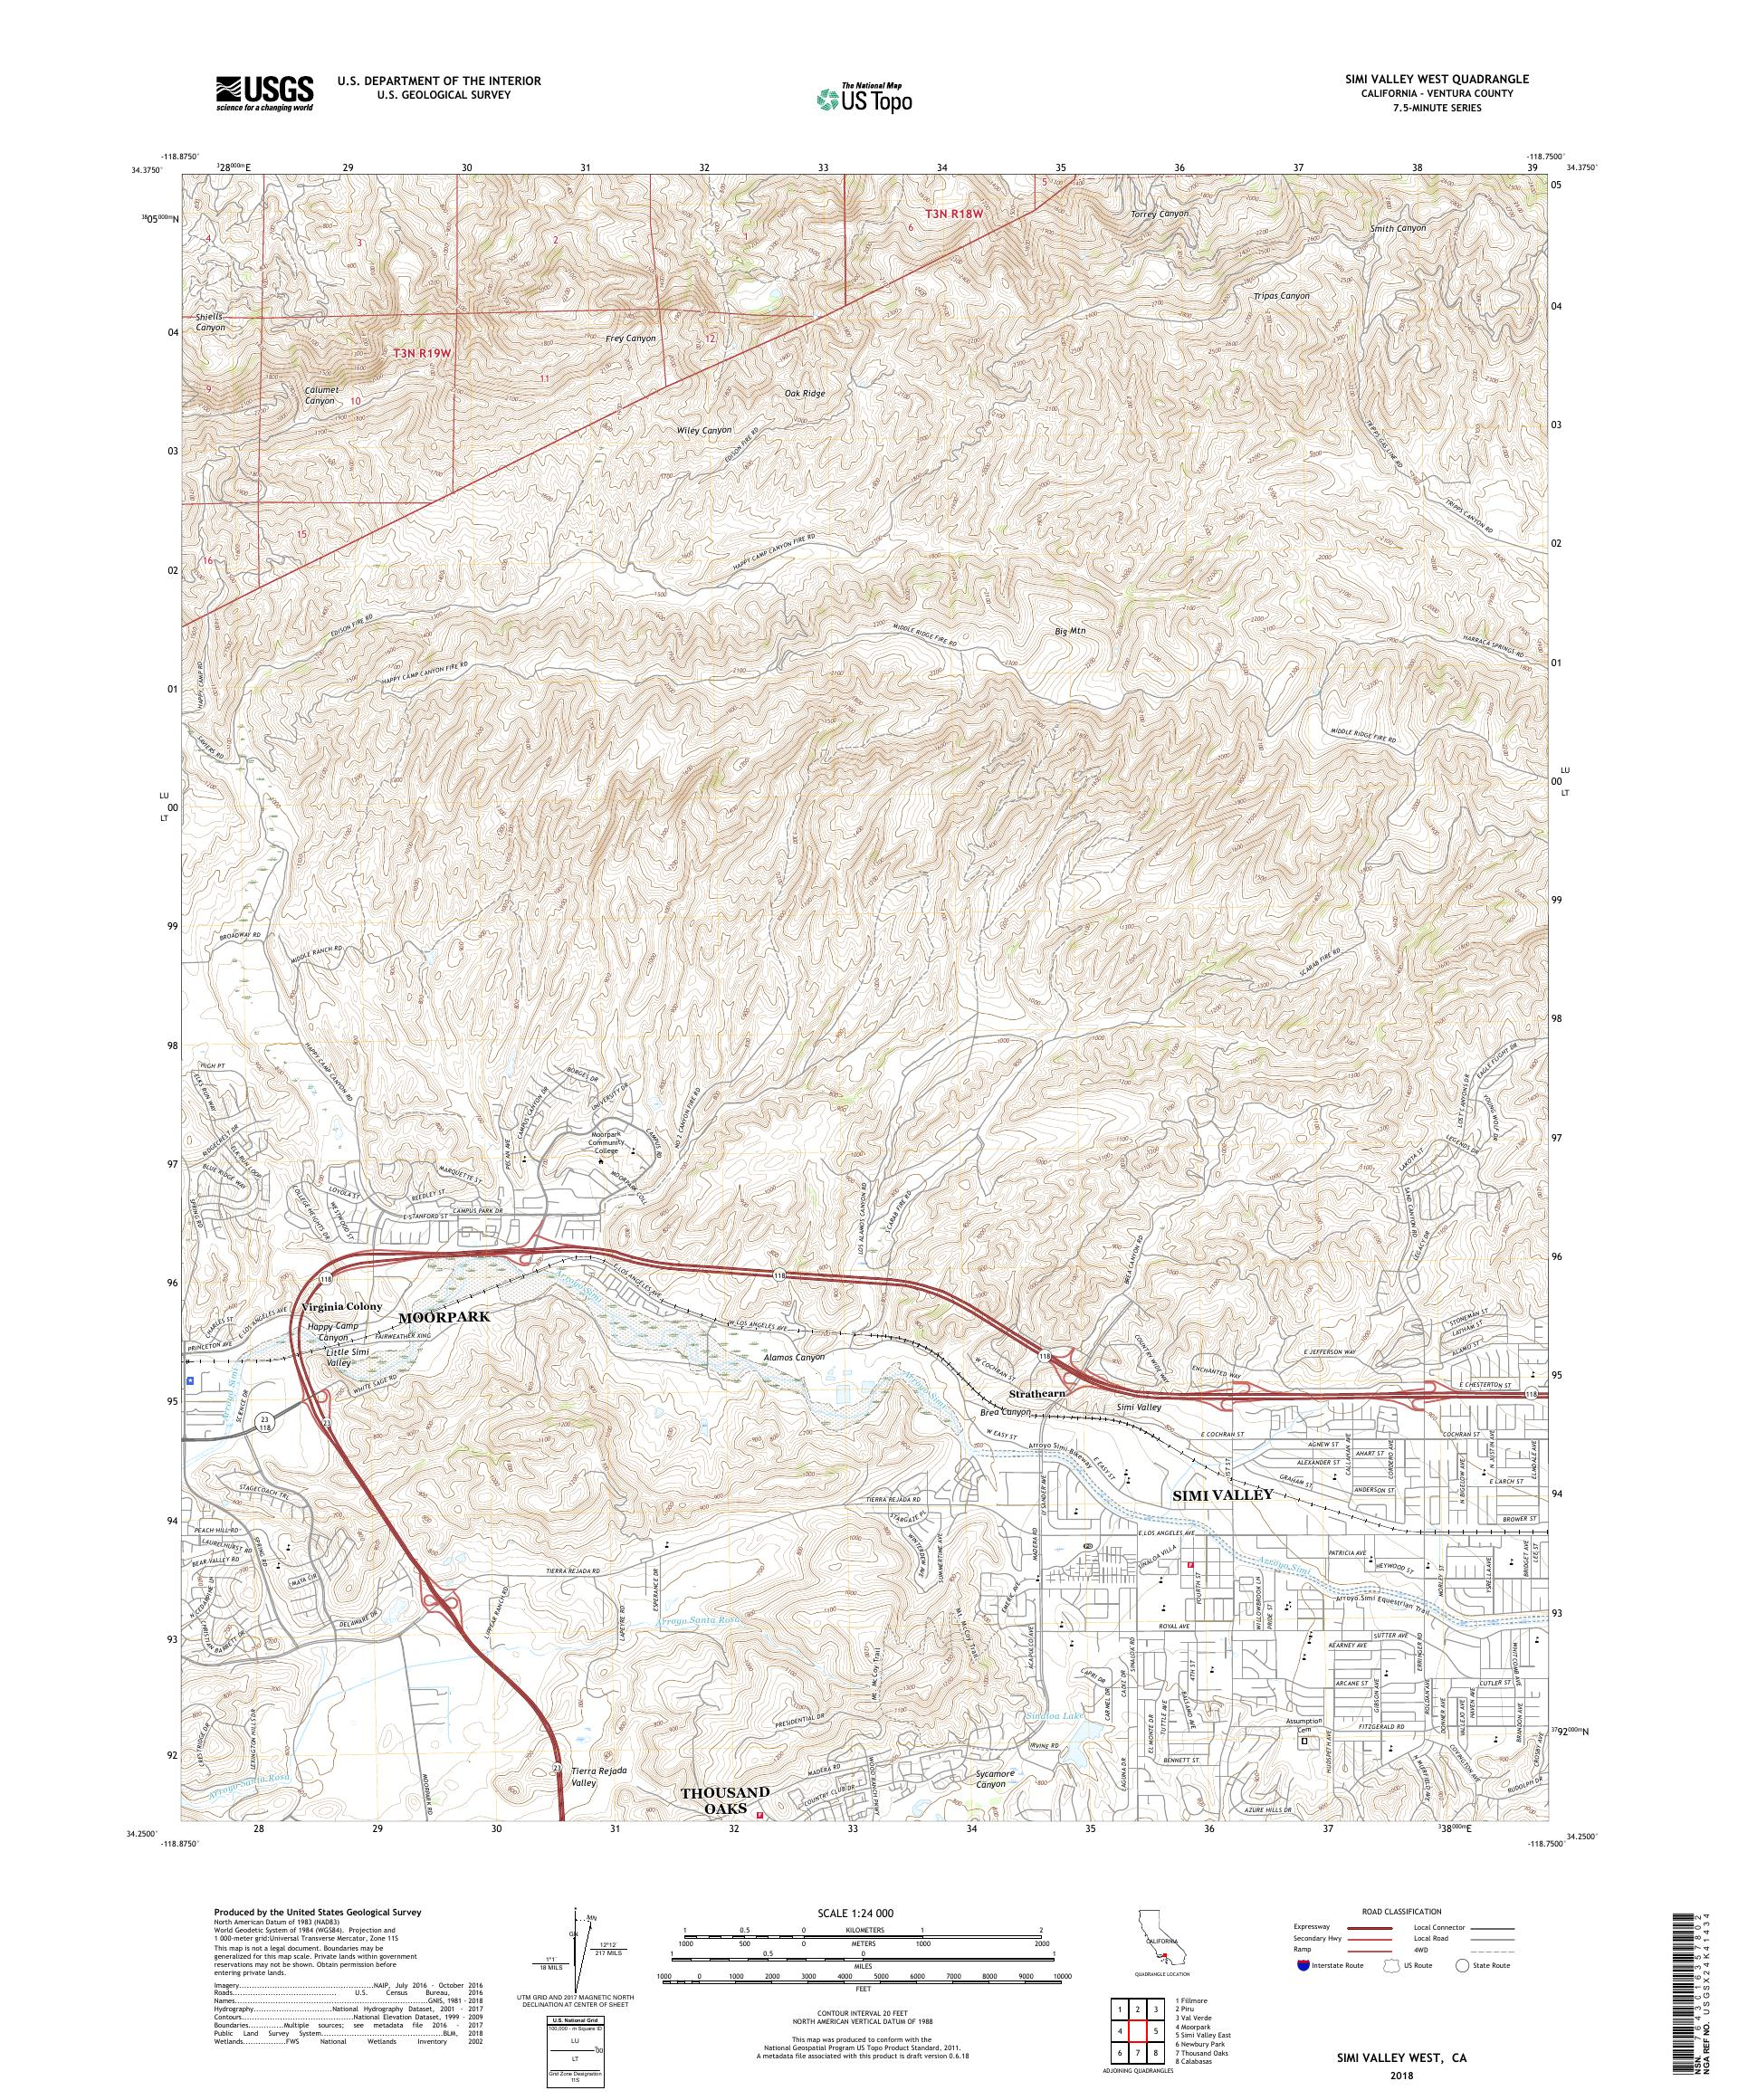 MyTopo Simi Valley West, California USGS Quad Topo Map on trinity center map, salinas valley map, fairmont map, thousand oaks map, santa clarita valley map, colton map, hope ranch map, conejo valley map, lehigh valley hospital campus map, chino map, ventura county map, piru map, malibu canyon map, poway map, spring valley lake map, central valley map, west hills map, california map, valley on map, valley village map,